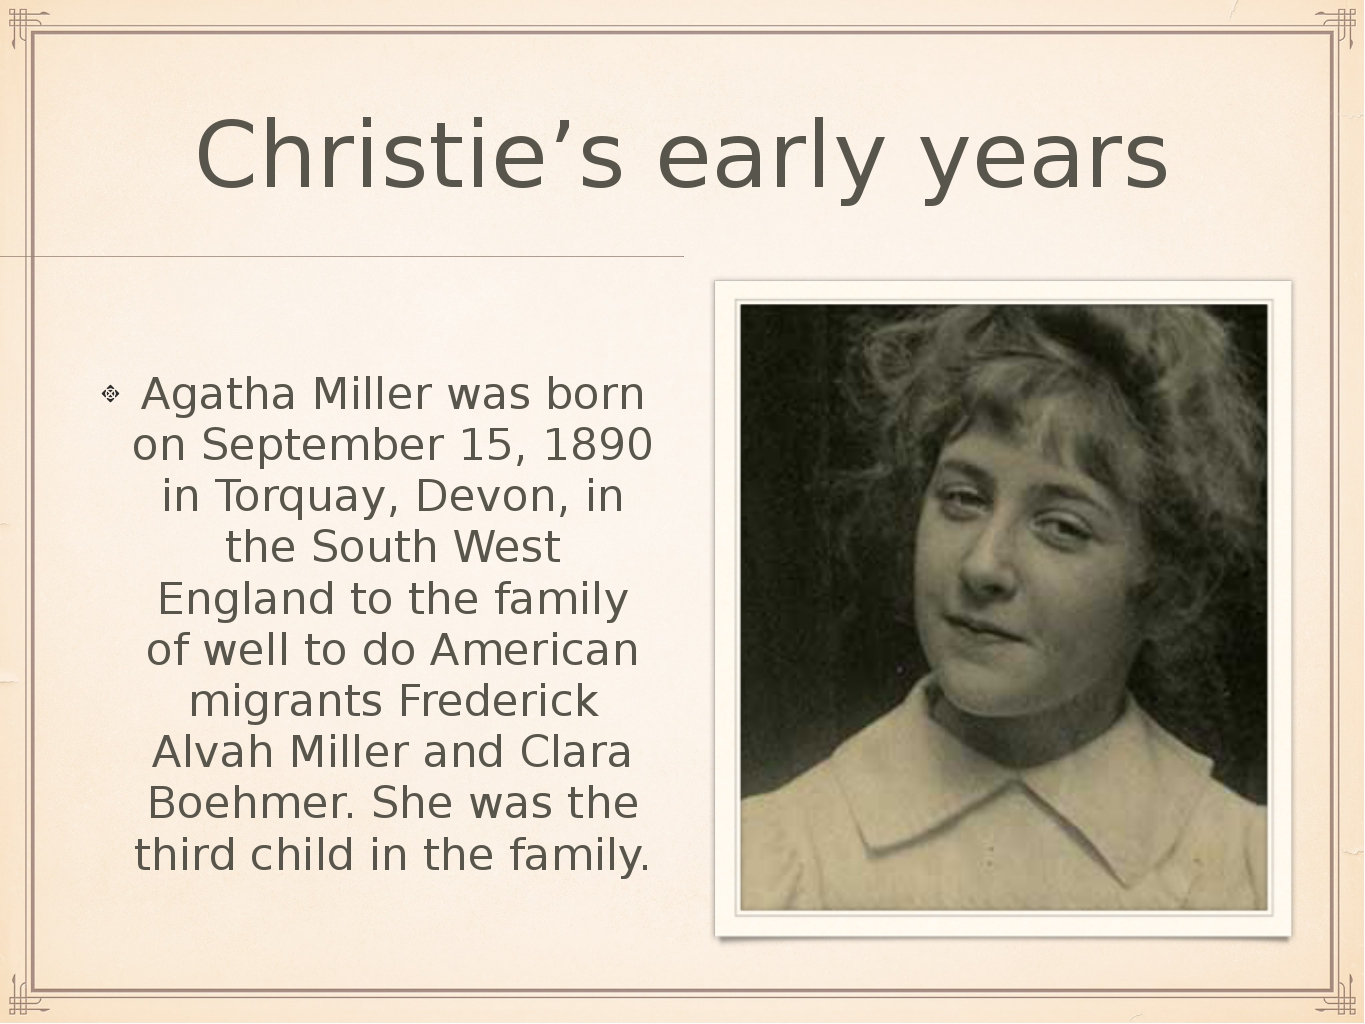 Christie's early years Agatha Miller was born on September 15, 1890 in Torqua...